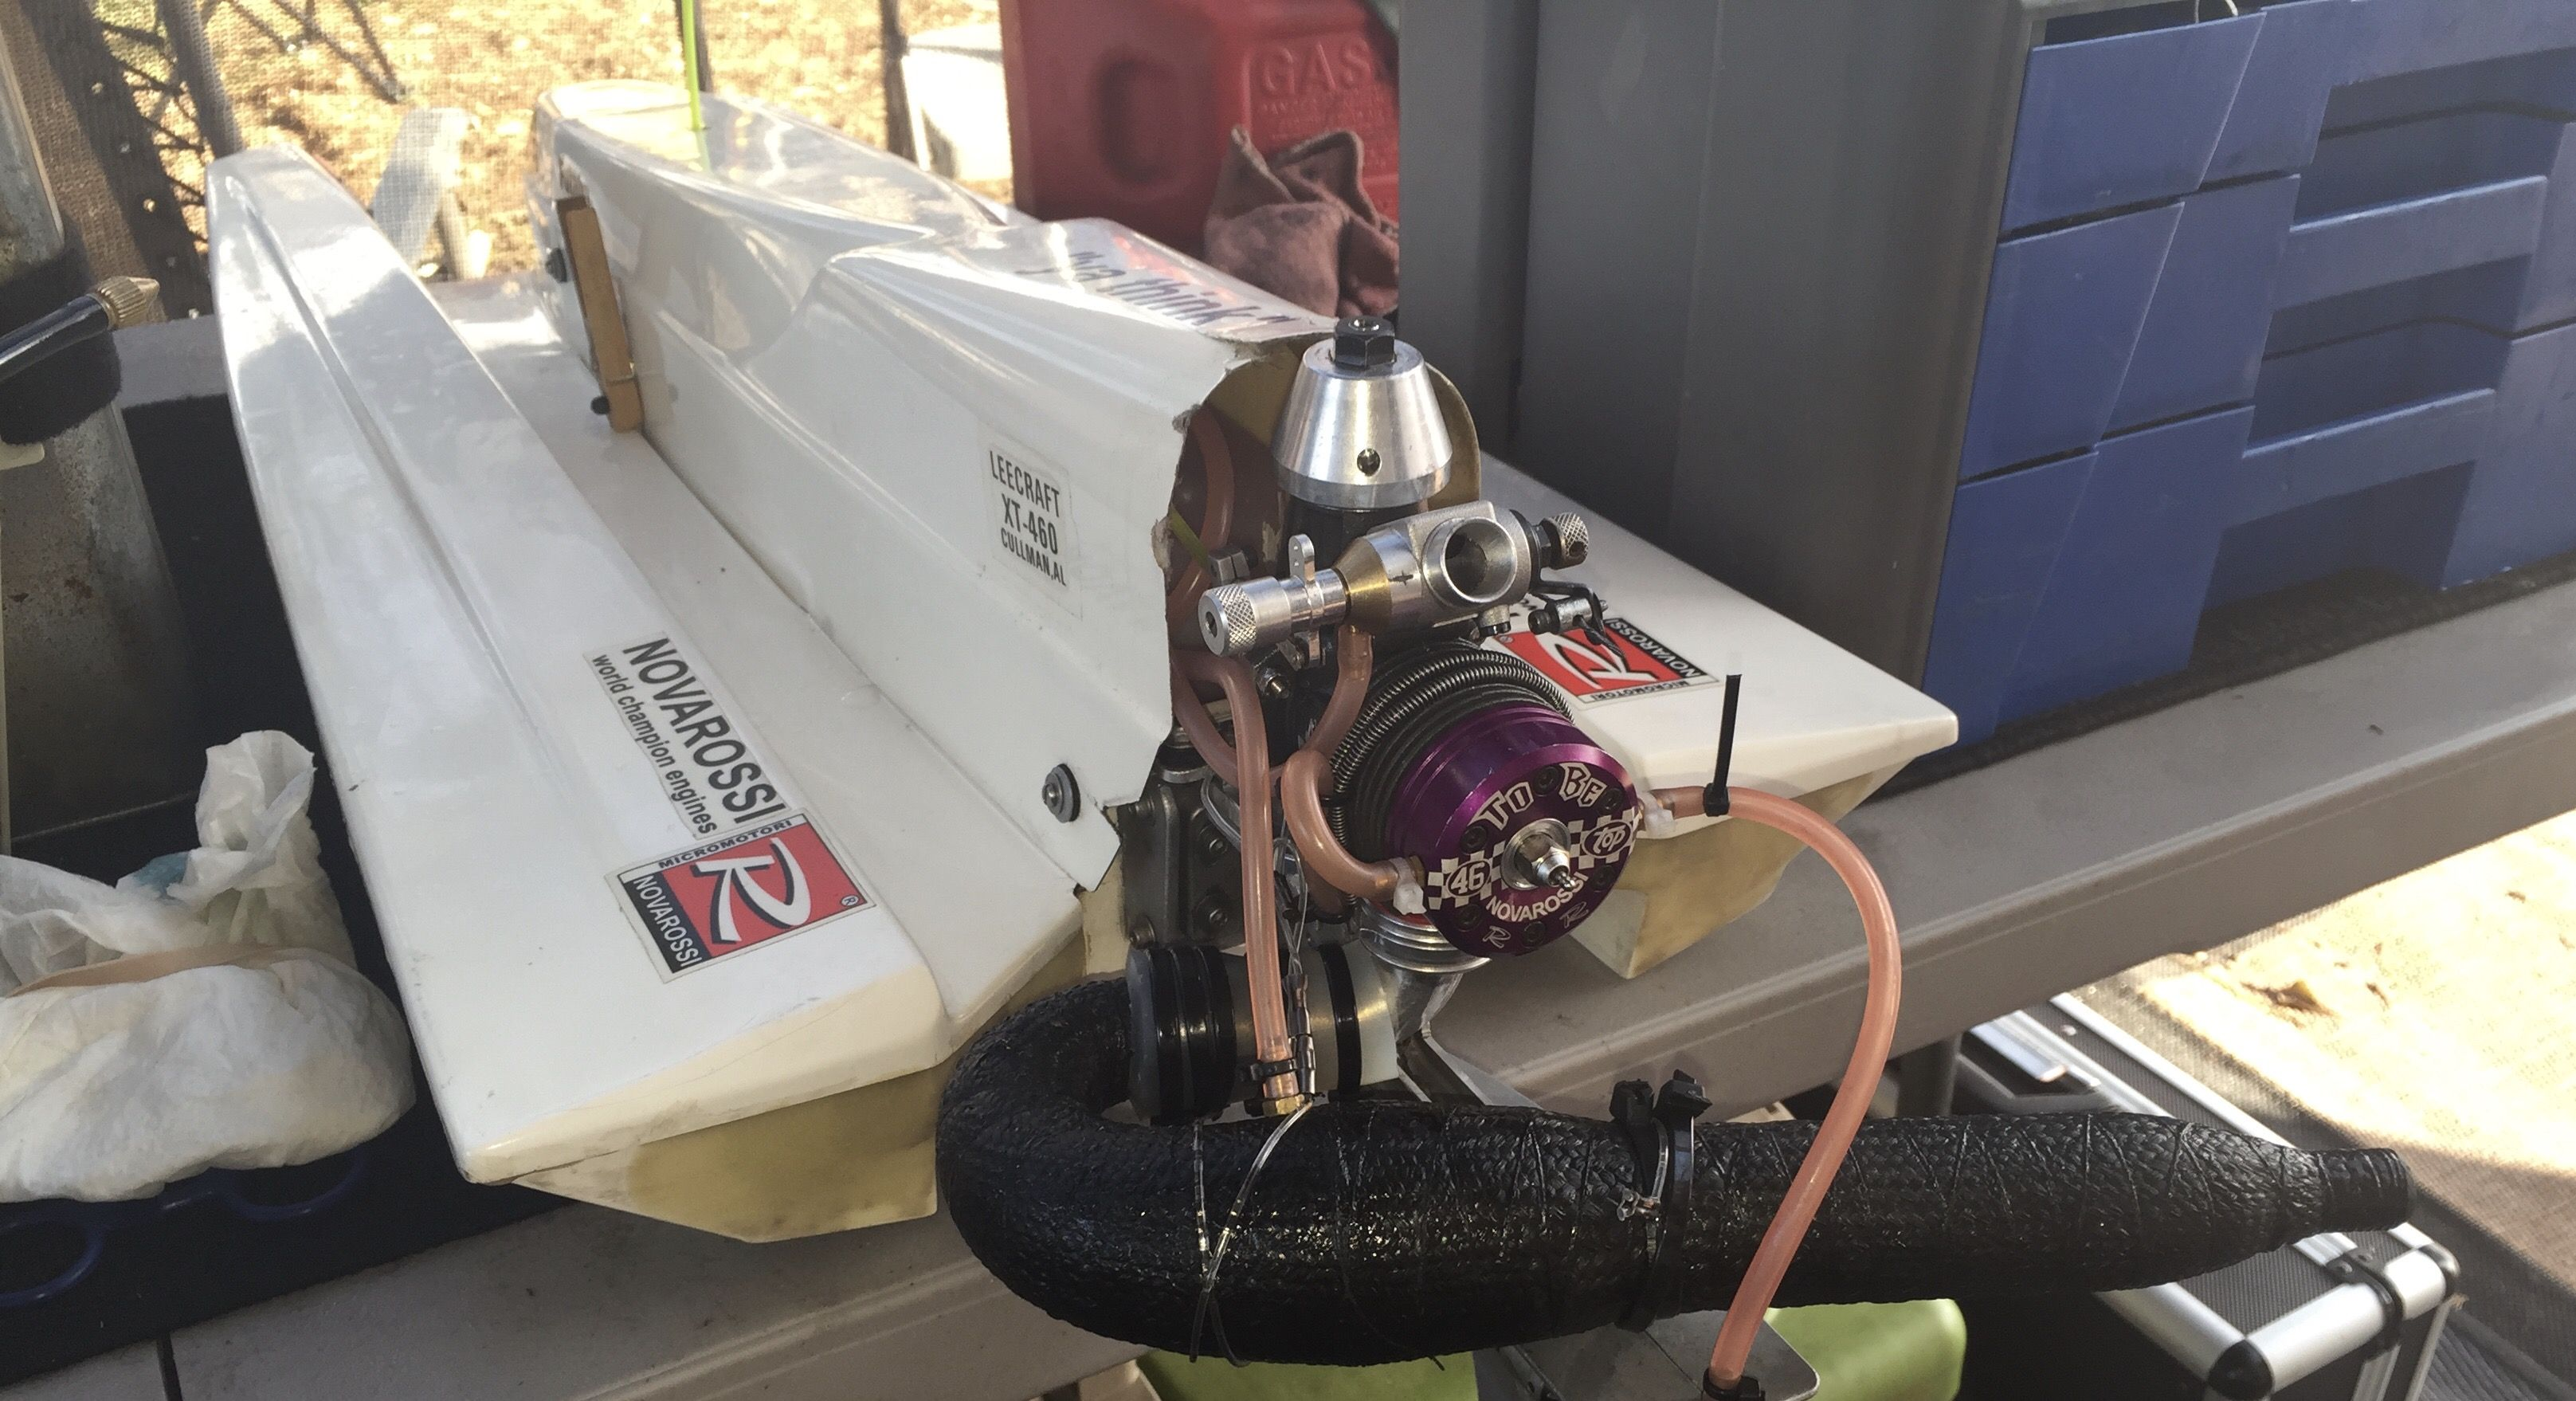 Pin by Novarossi Marine USA on Novarossi 46 OB Outboard RC Boat Racing Engine | Outboard. Rc boats. Boat